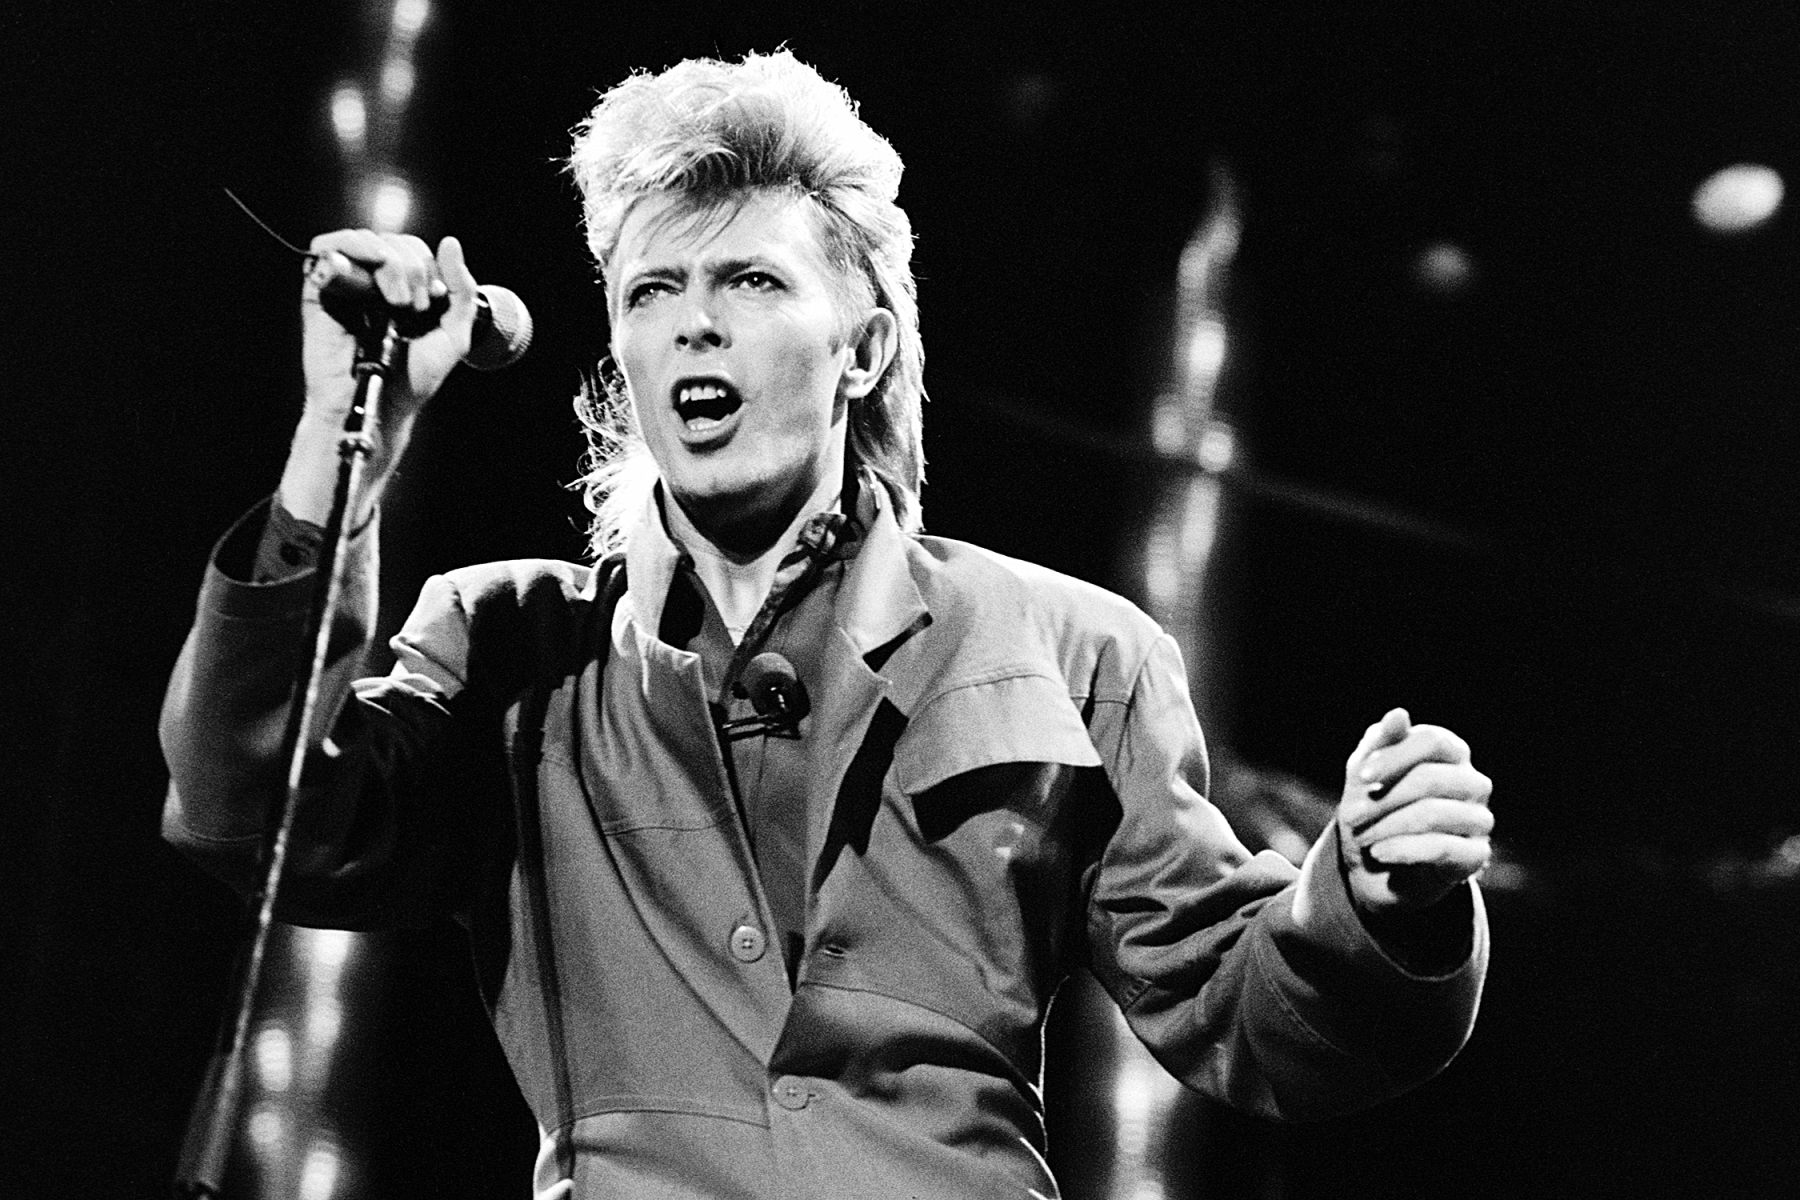 UNITED STATES - AUGUST 01:  David Bowie  (Photo by The LIFE Picture Collection/Getty Images)